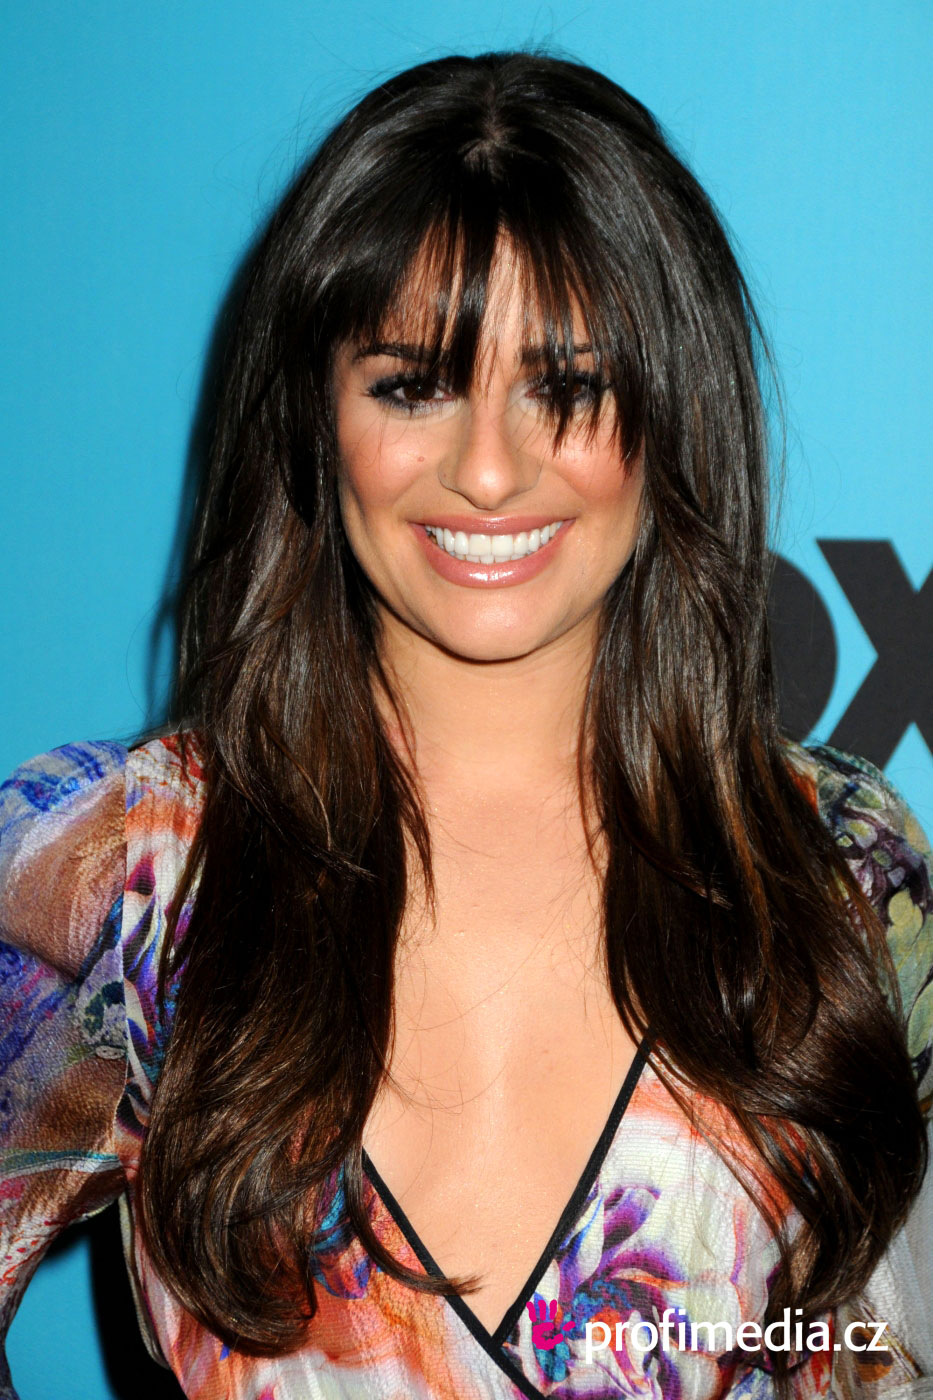 Lea Michele - Photos